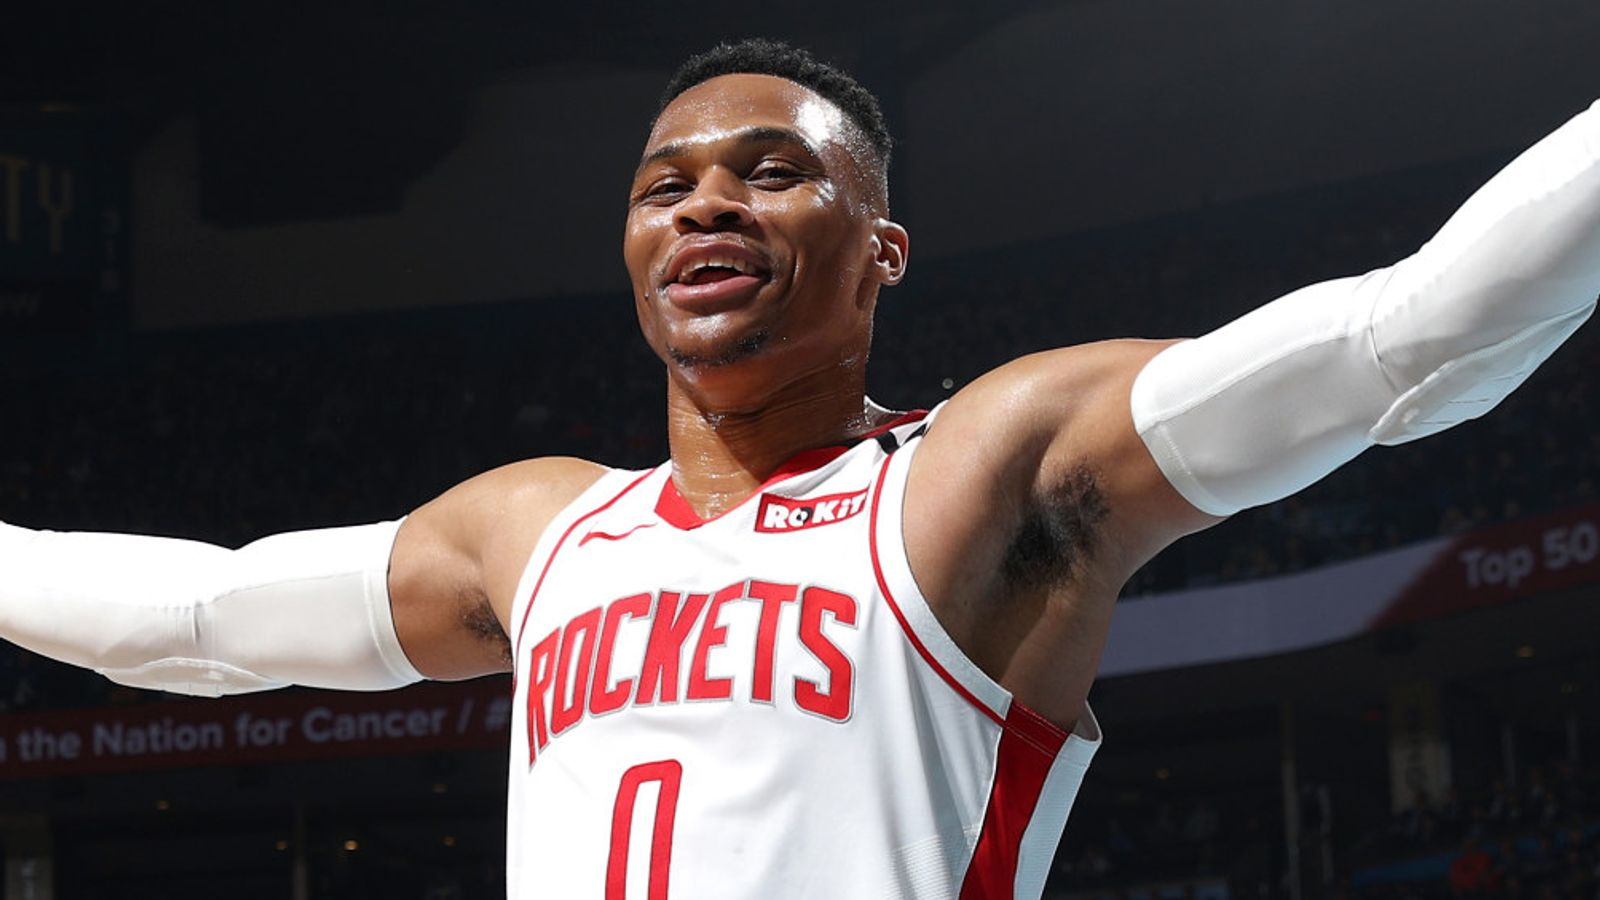 Russell Westbrook has quickly adapted to thrive with efficiency in Houston, says Mike Tuck